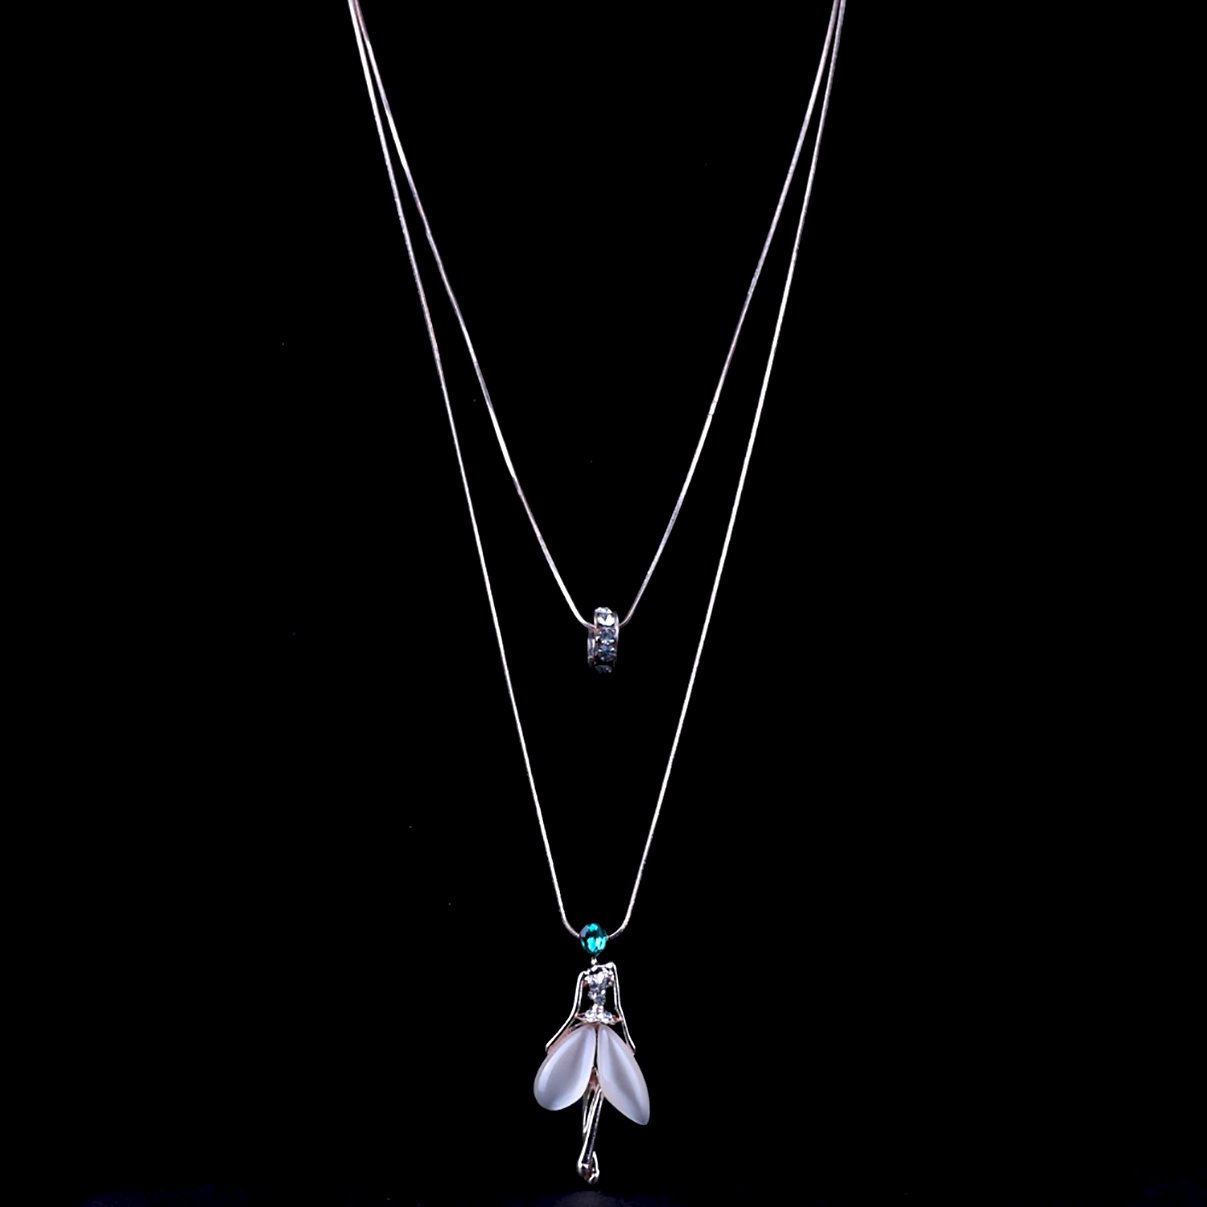 Crystal - Fairy Chain Necklace - Fashion Arks